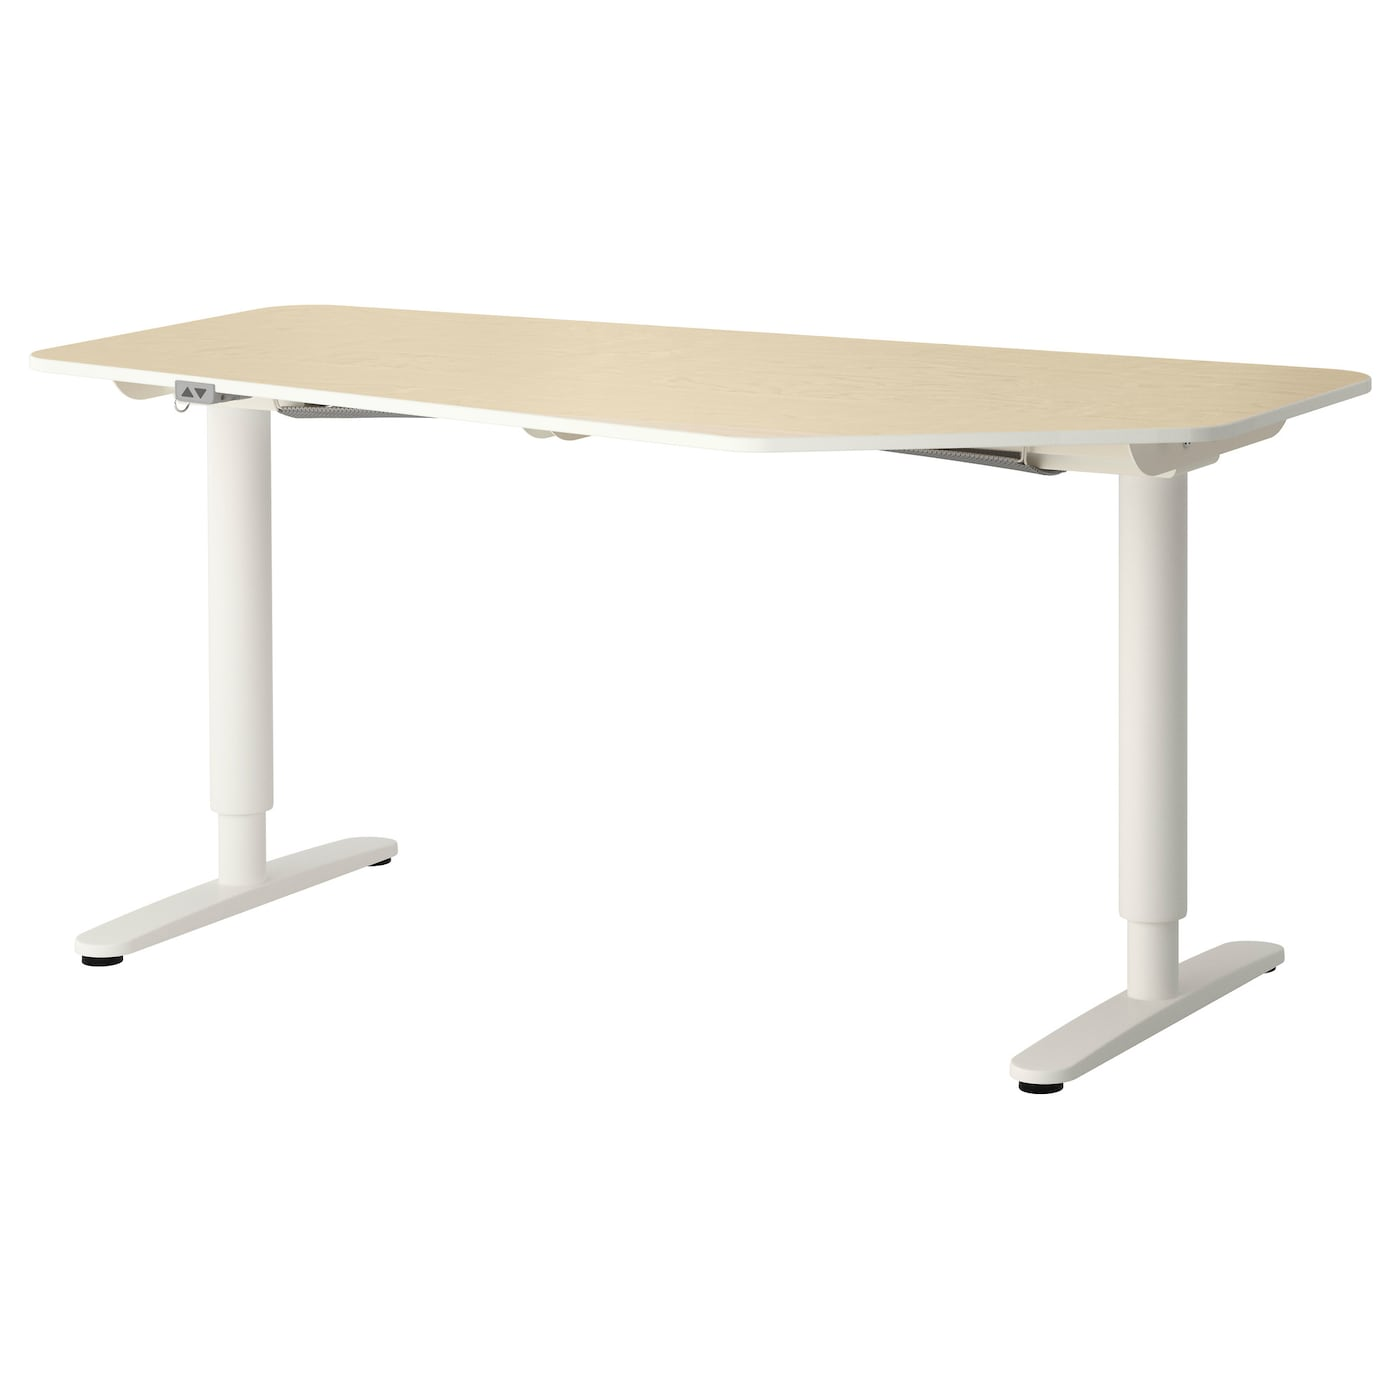 IKEA BEKANT 5-sided desk sit/stand